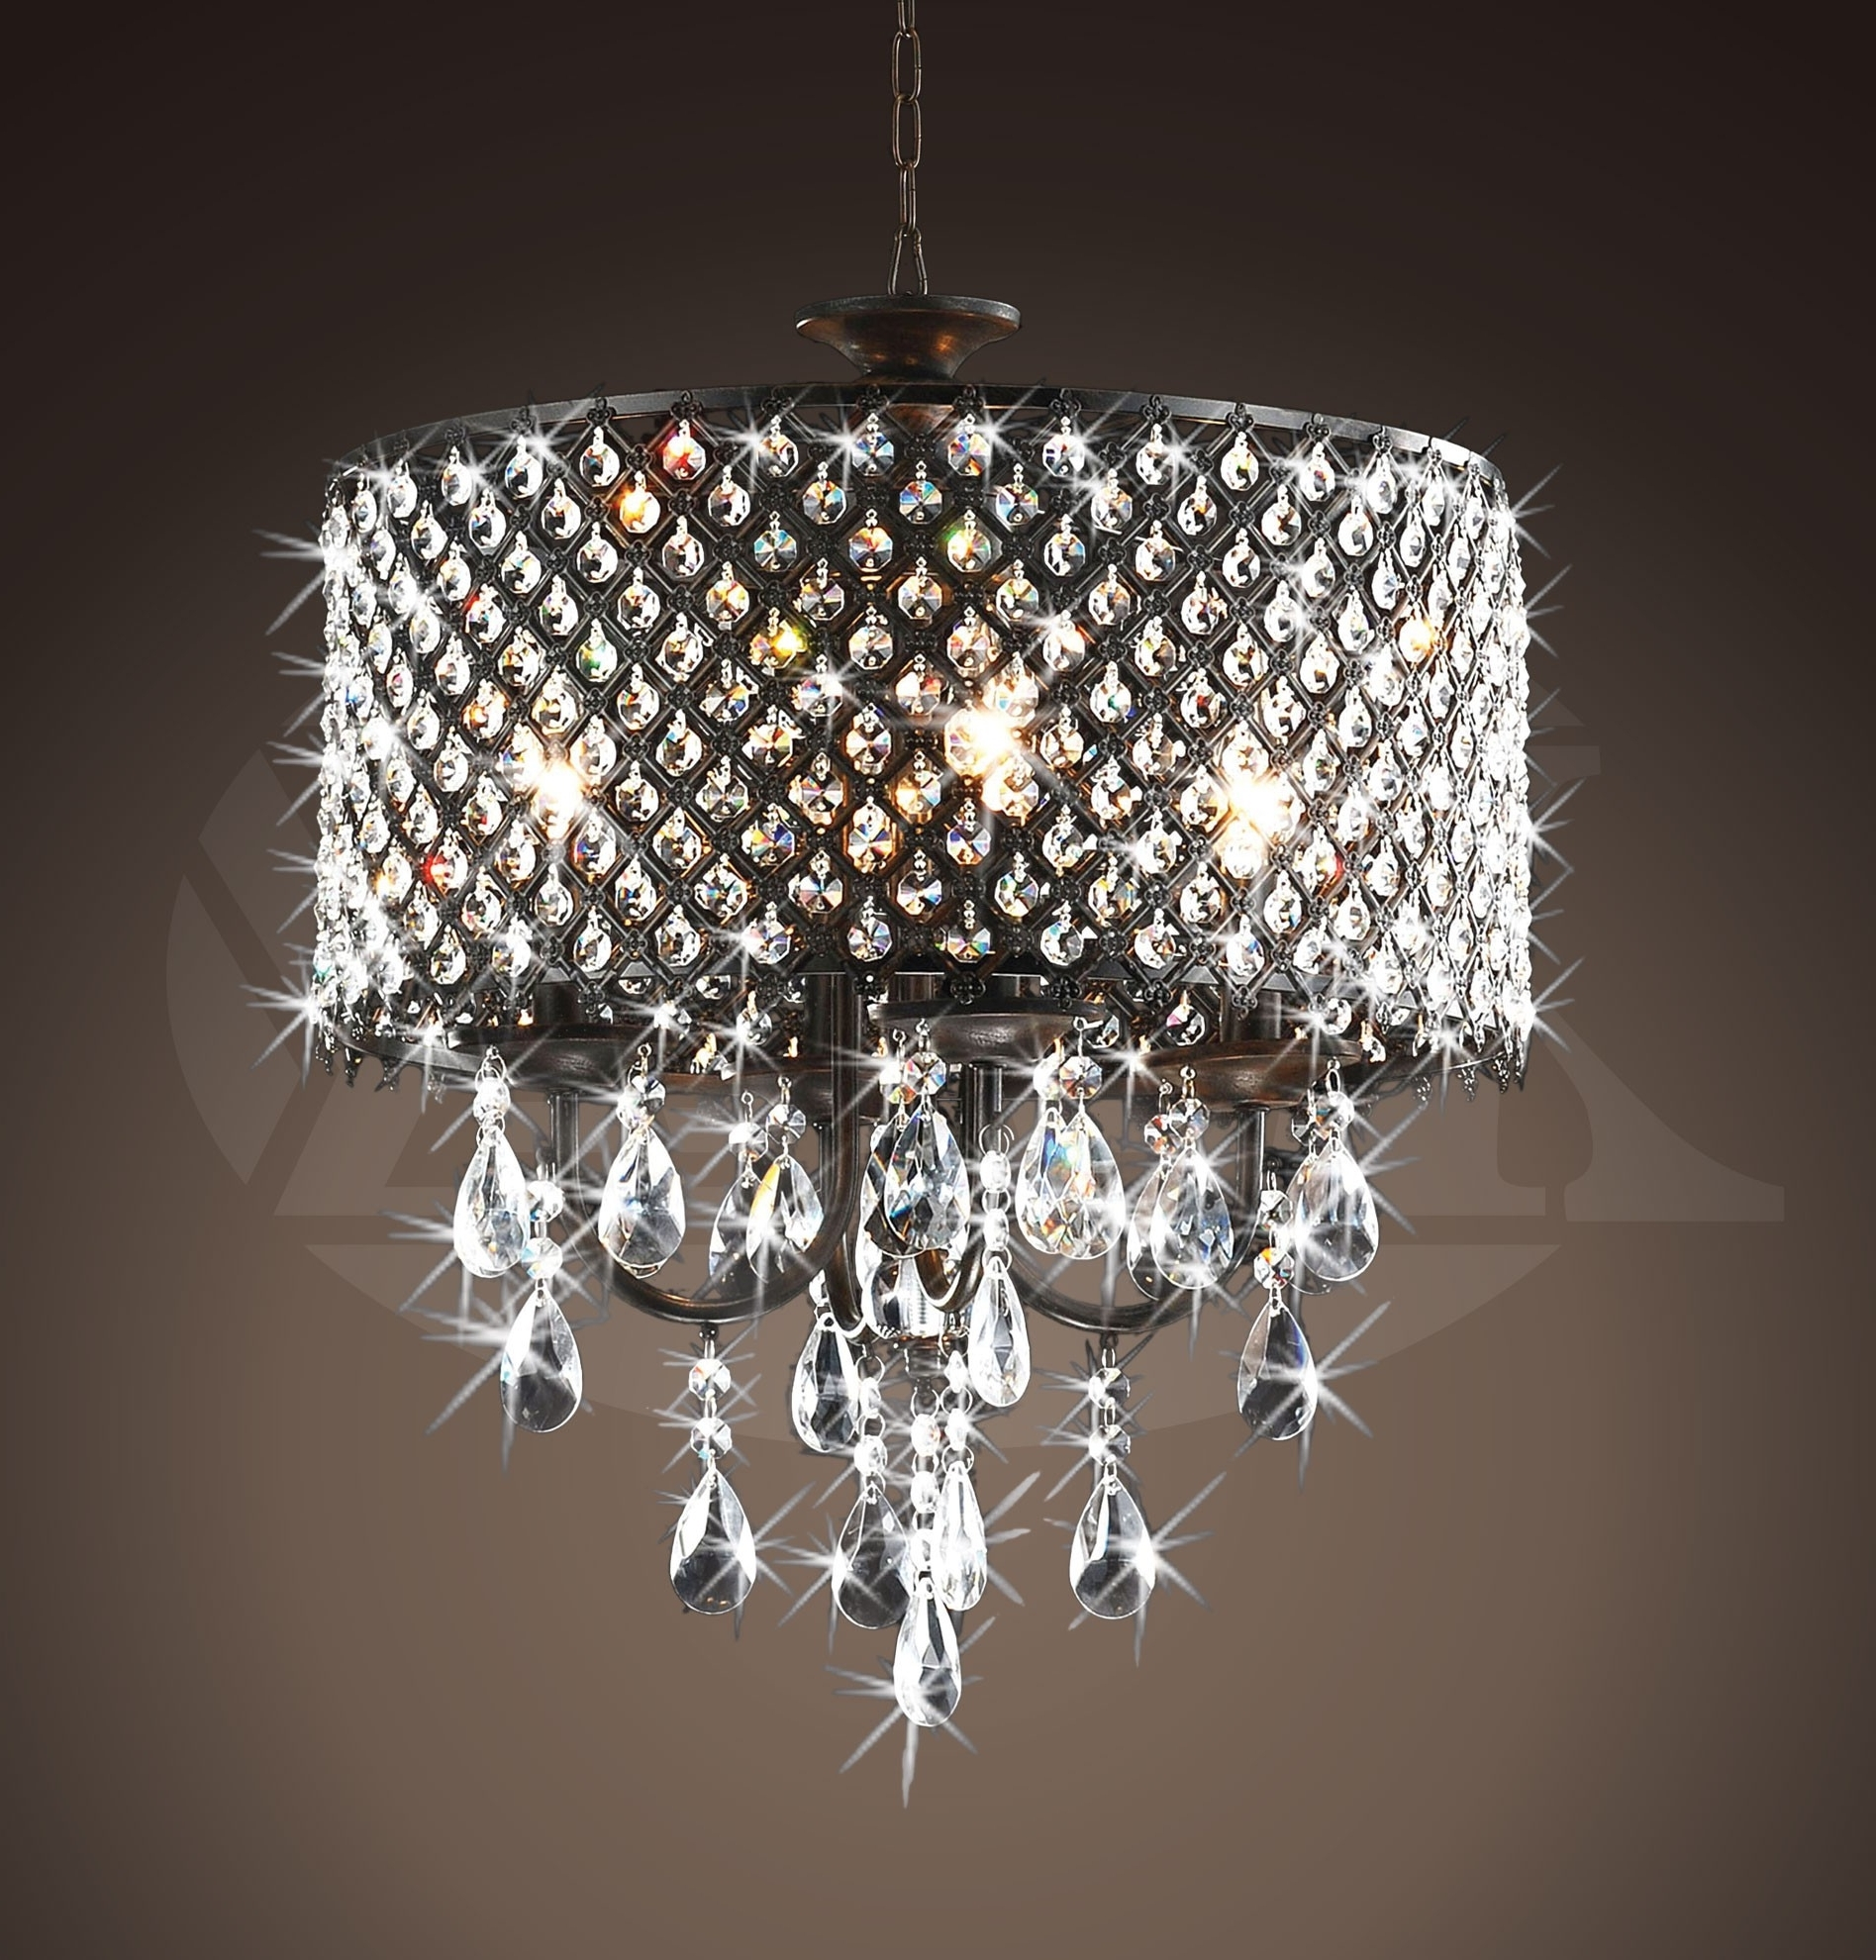 Current Rachelle 4 Light Round Antique Bronze Brass Crystal Chandelier Regarding 4 Light Crystal Chandeliers (View 6 of 20)